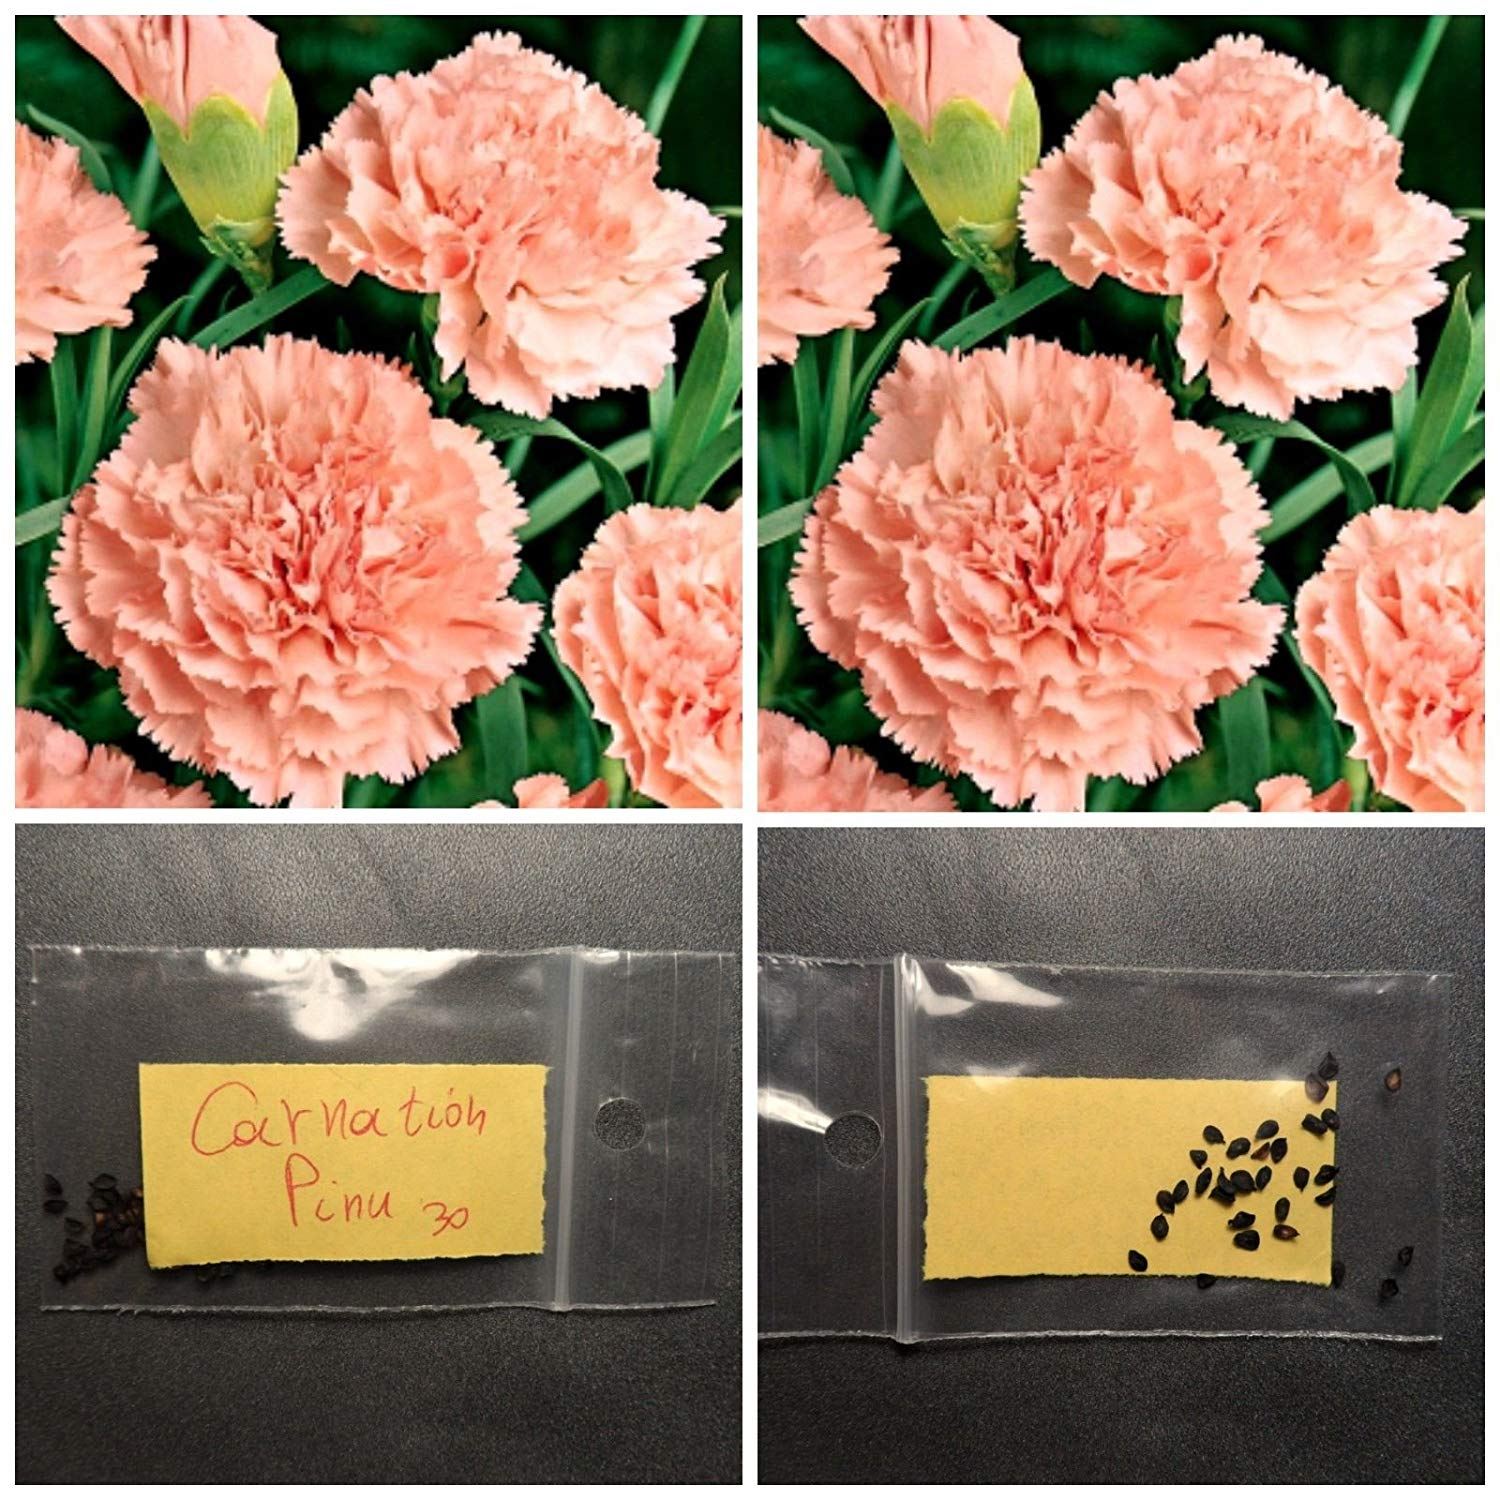 Pink Carnation Flower Seeds ~30 Top Quality Seeds - Colorful Garden - Easy Grow